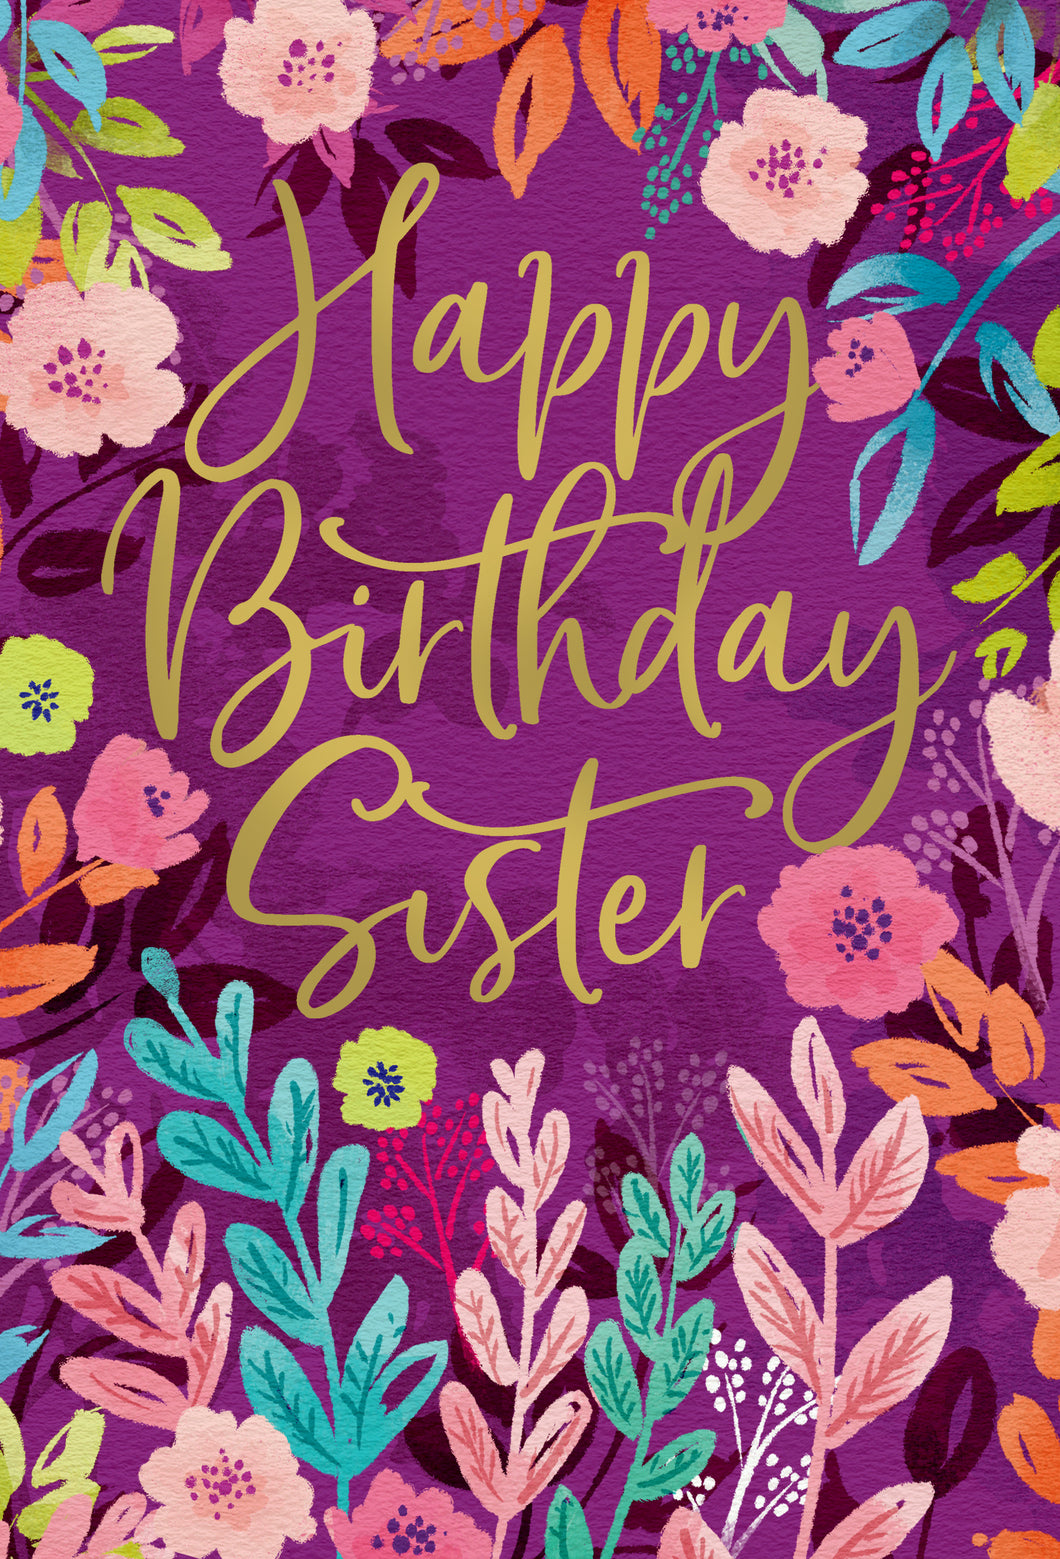 Birthday Sister Card Floral Frame